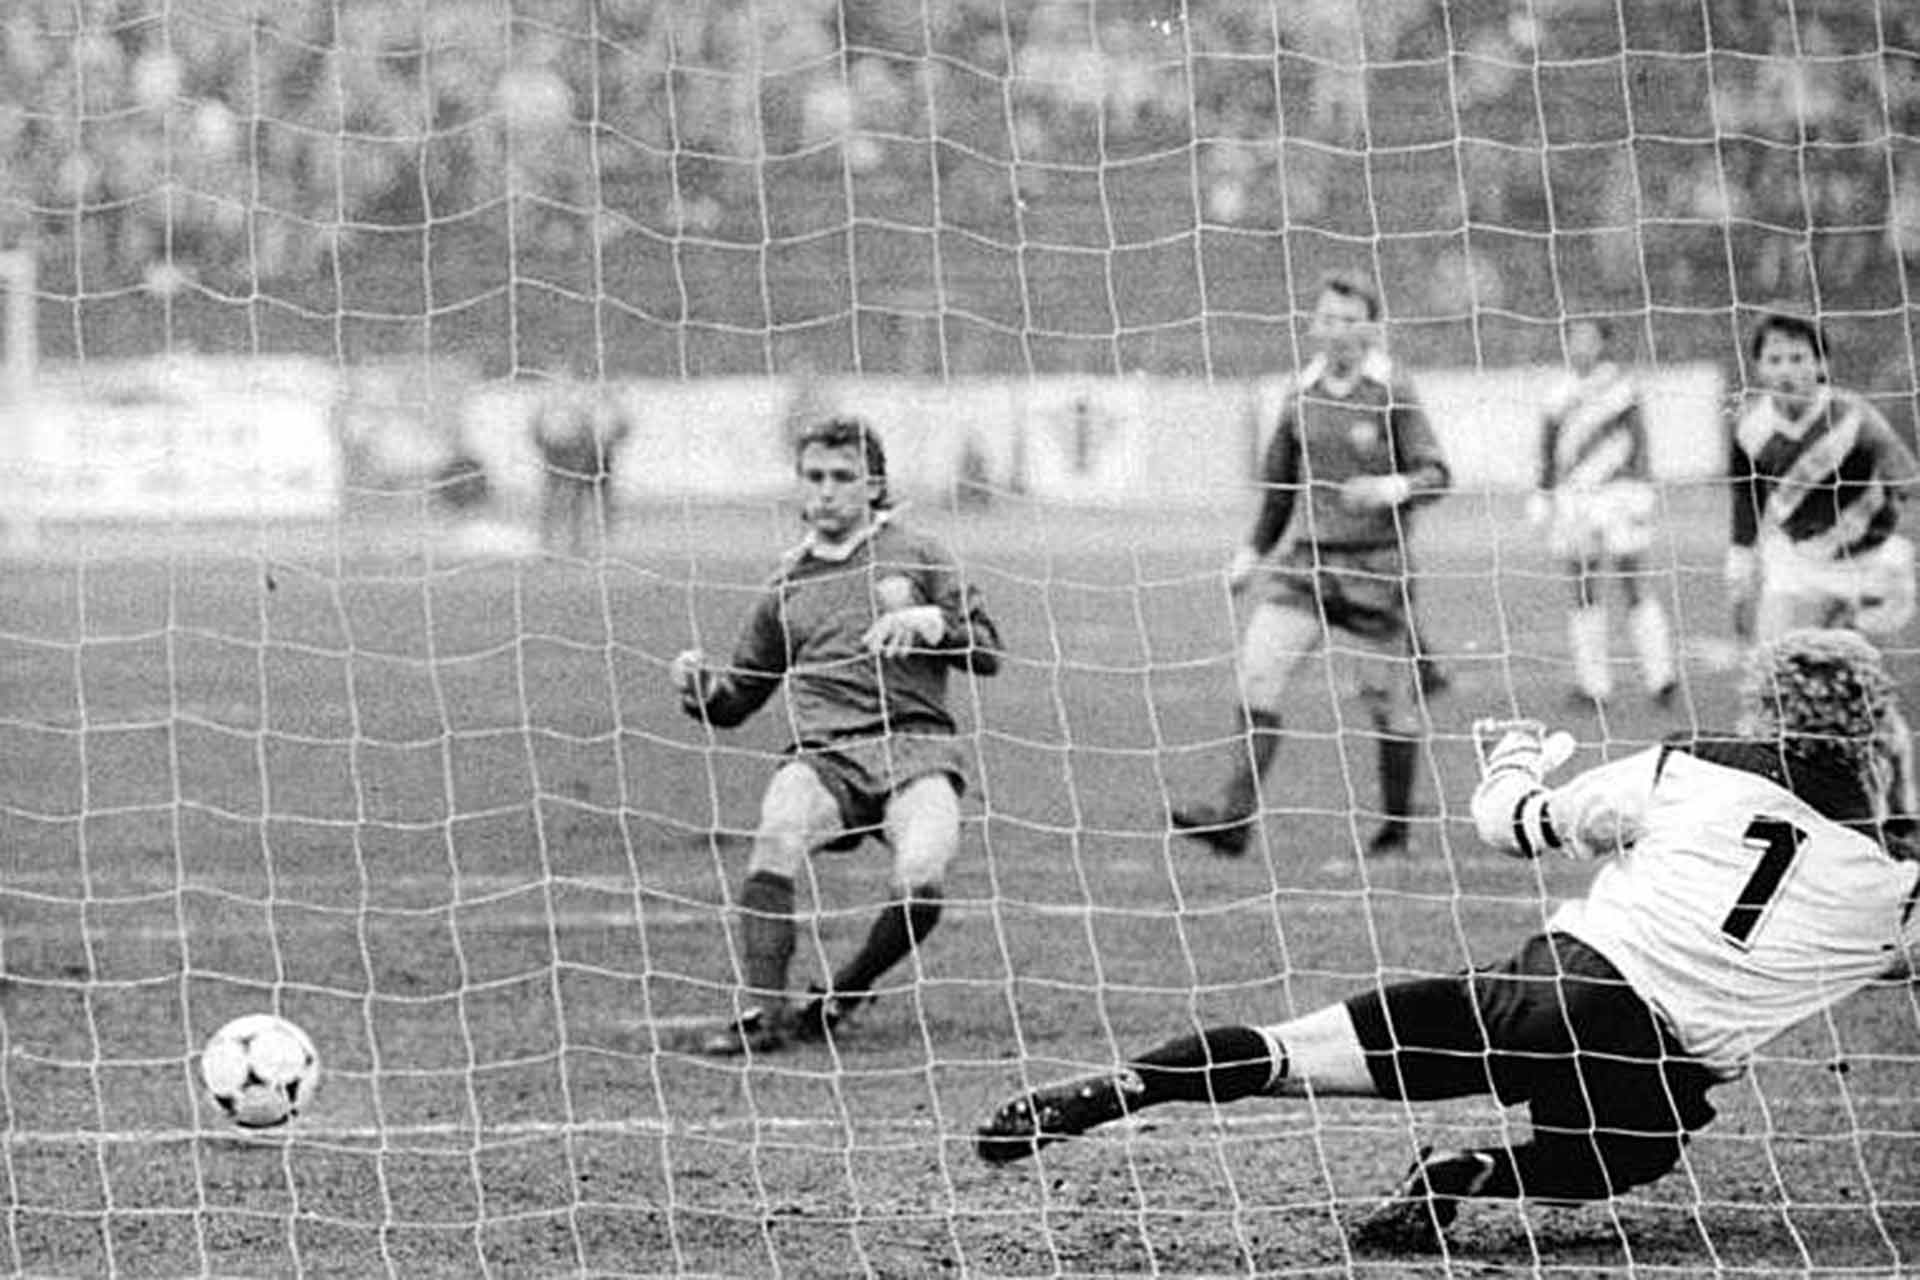 Wismut Aue playing BFC Dynamo in 1989. (German Federal Archive, ADN-ZB-Grimm-4.3.89-hko)